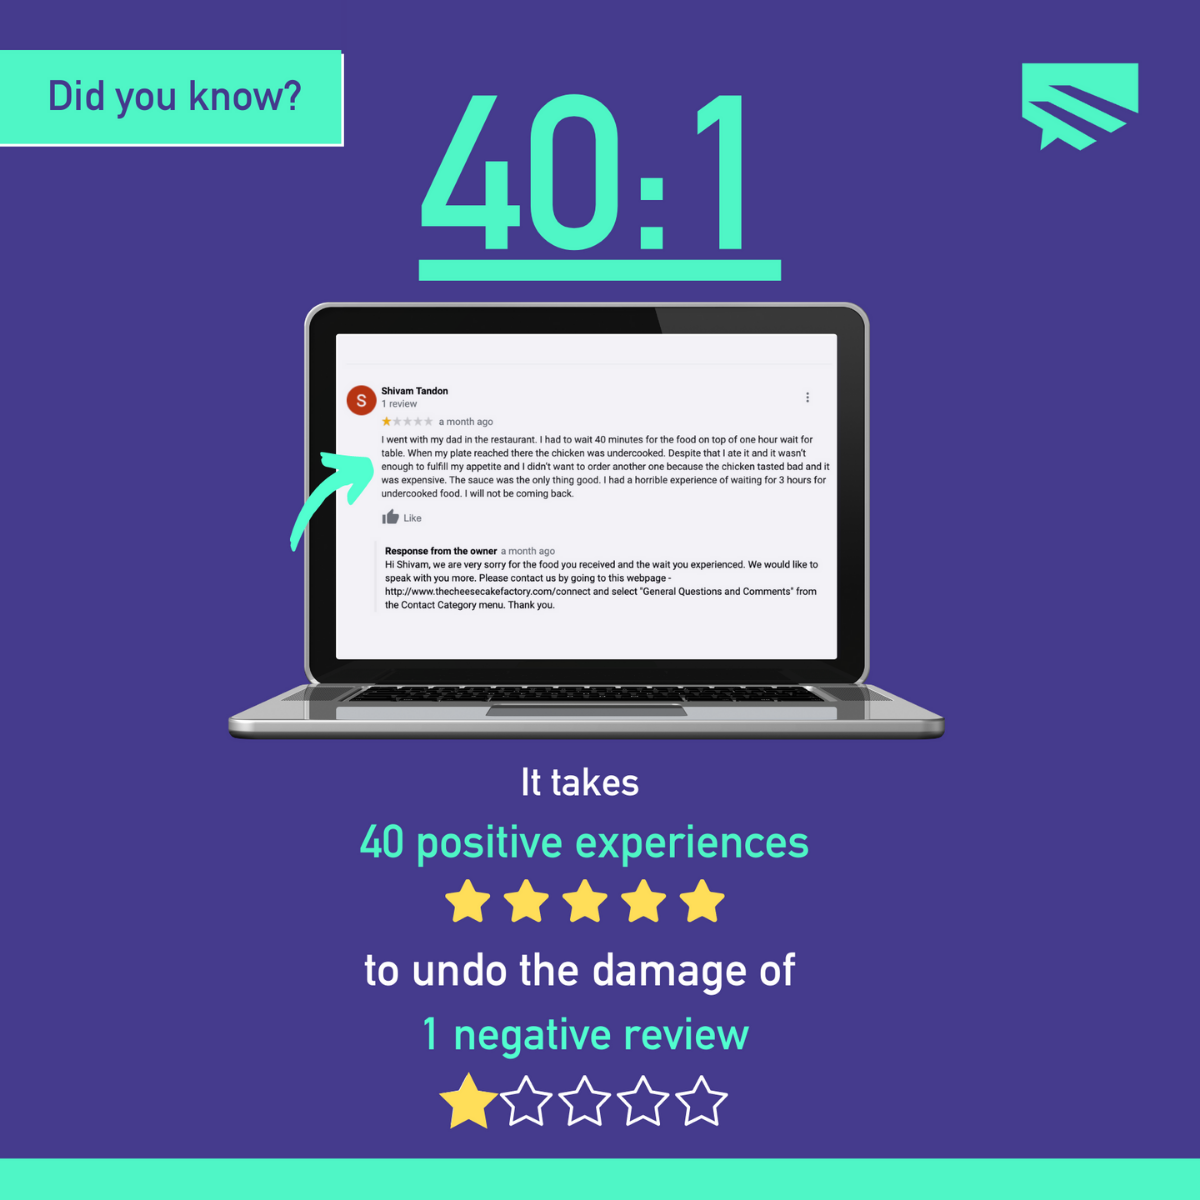 statistic of 40:1 ratio of negative and positive reviews